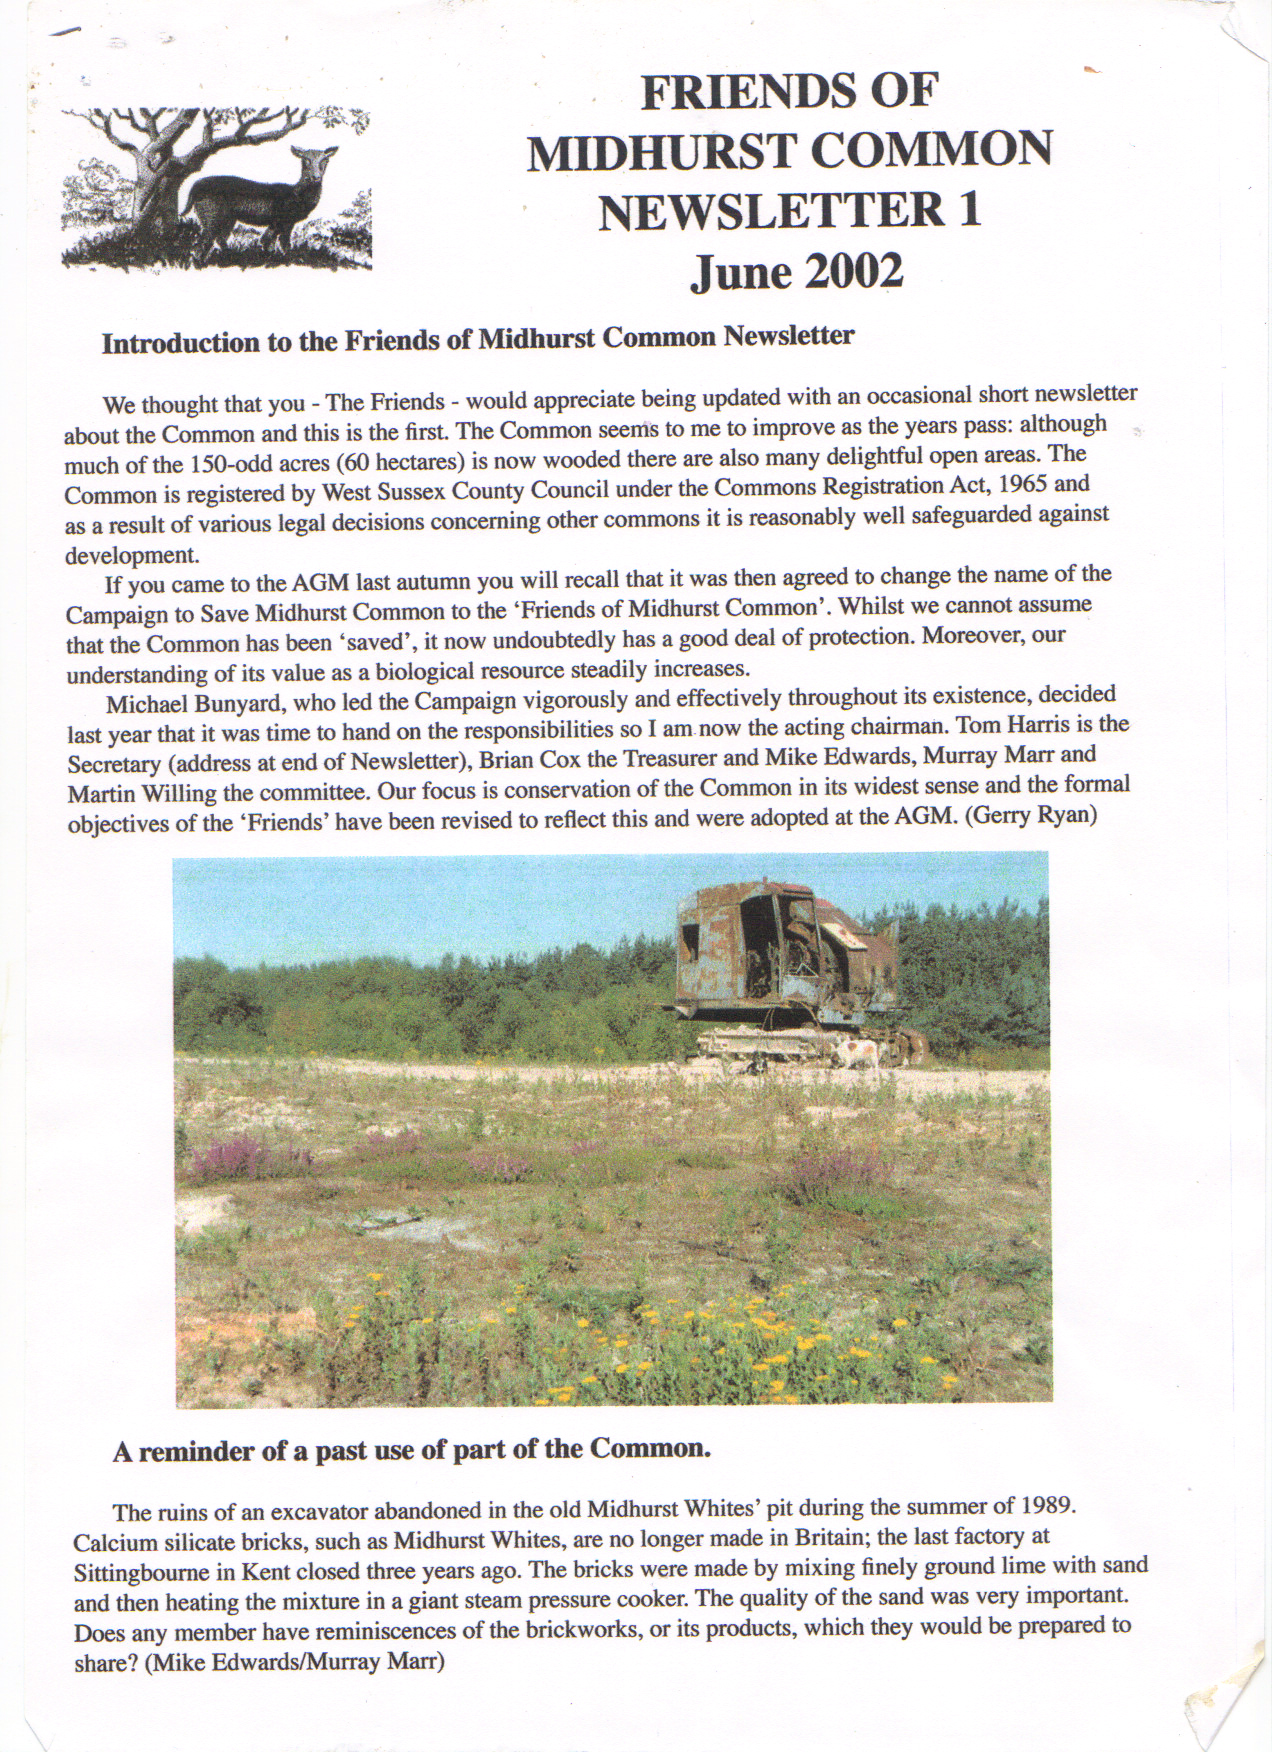 Newsletter 1 - June 2002 - A reminder of a past use of part of the common